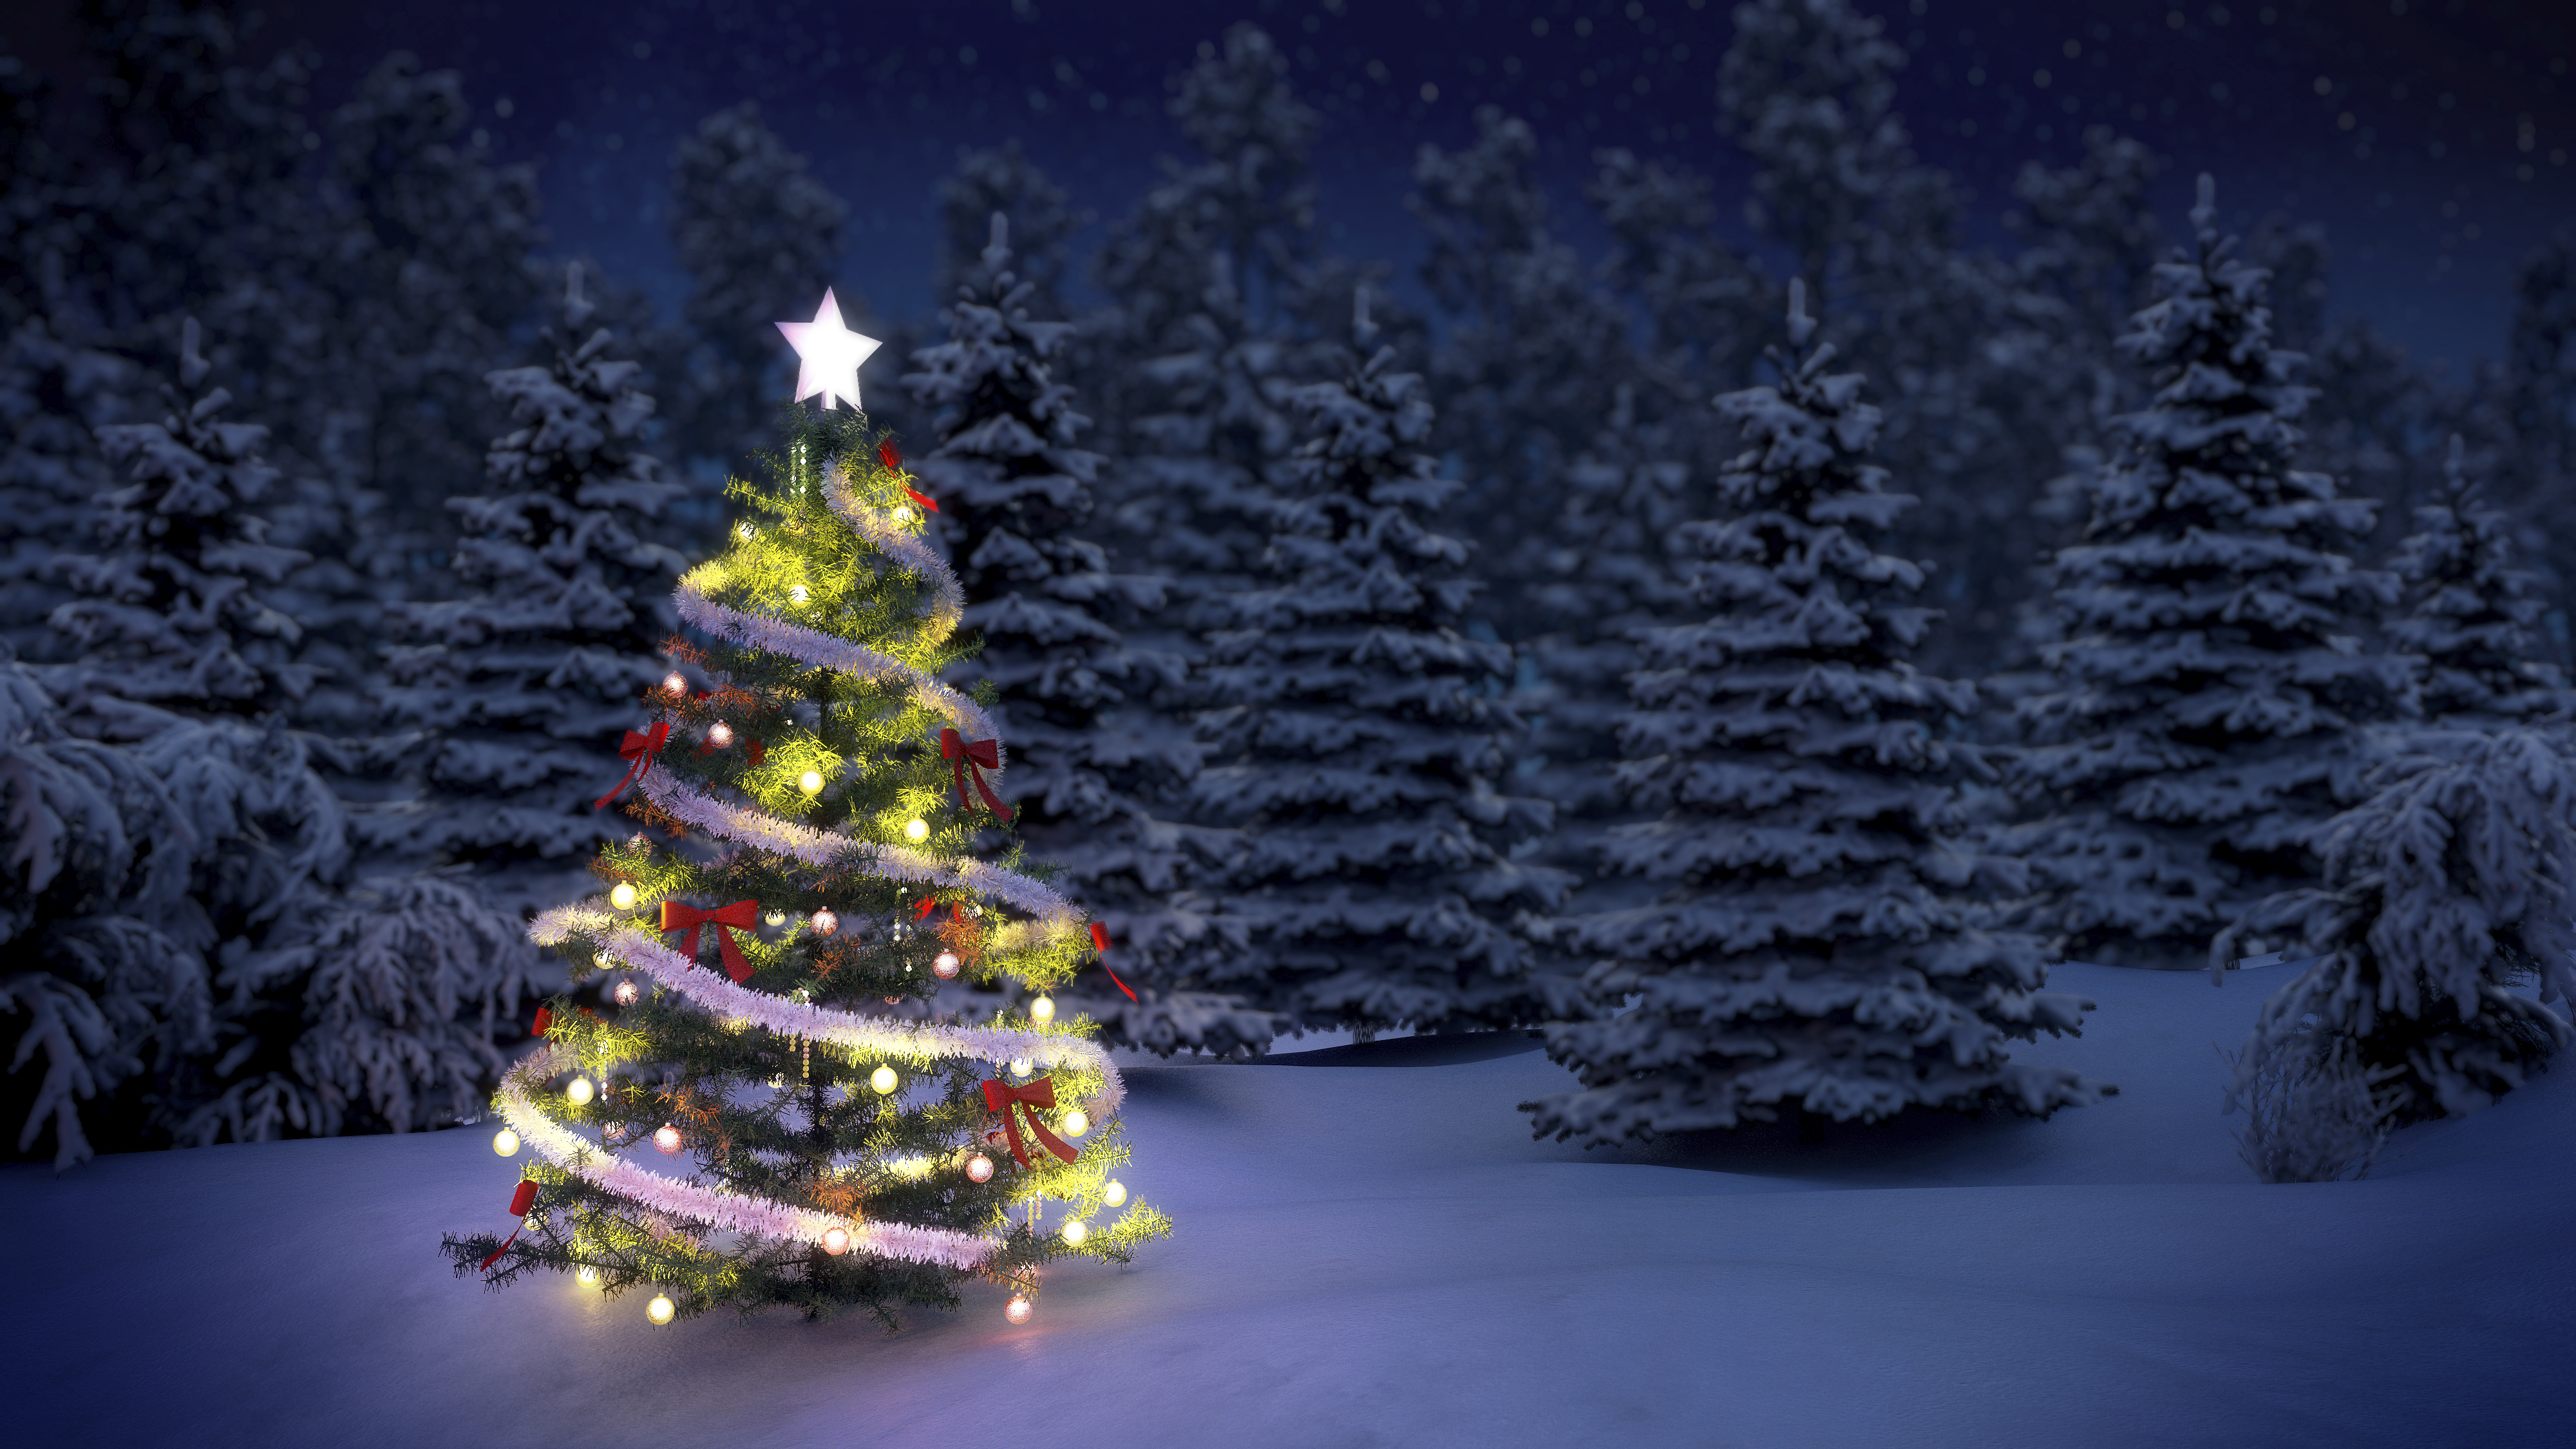 Christmas tree before snow covered trees at night